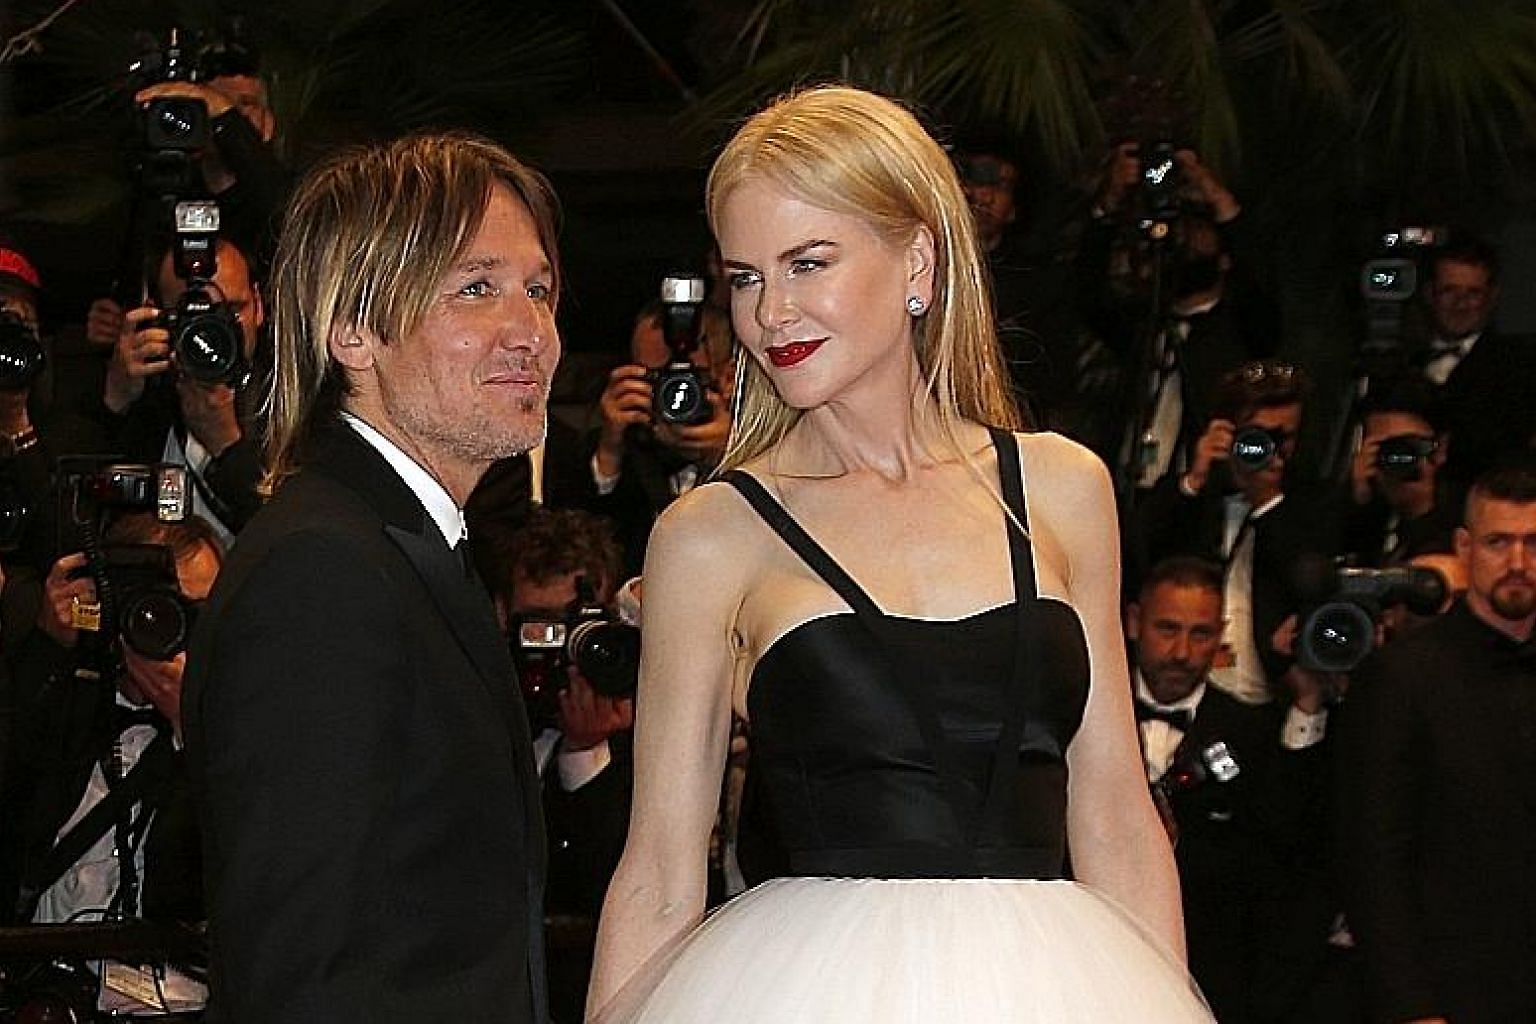 Australian actress Nicole Kidman and her husband, singer Keith Urban, at the premiere of her film, The Killing Of A Sacred Deer.